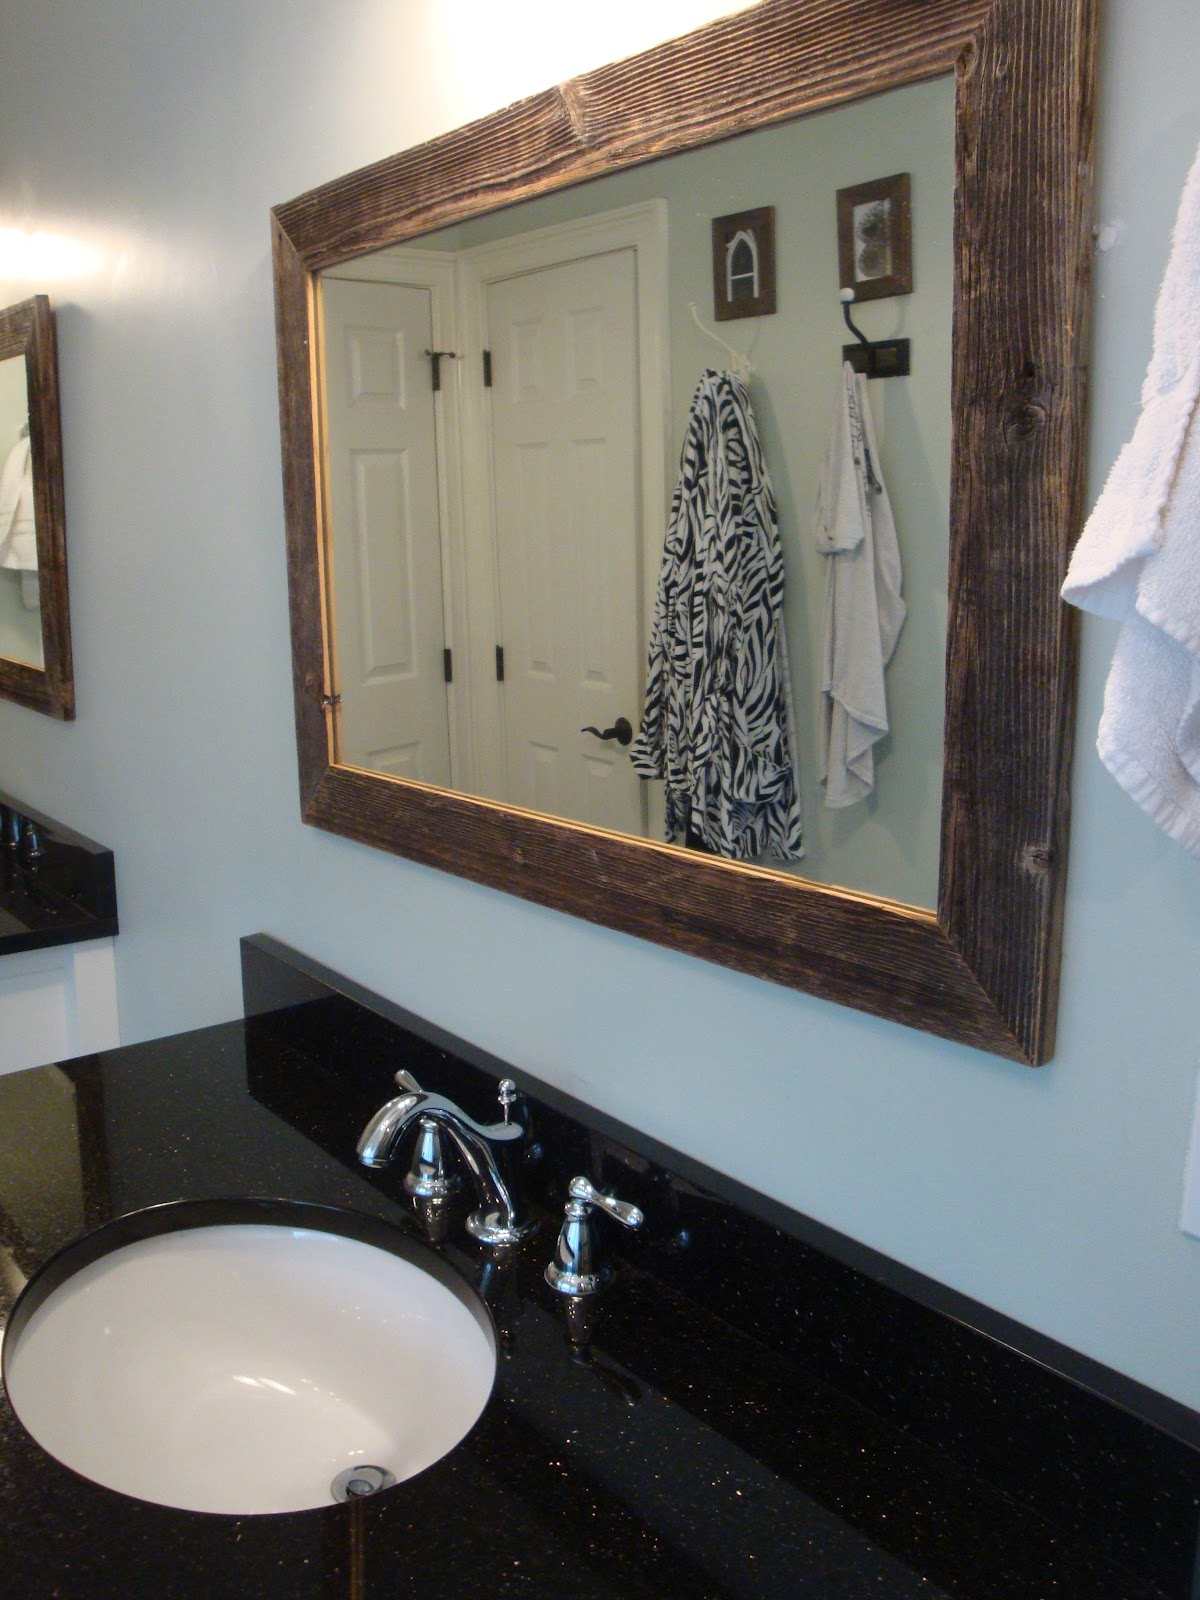 Barnwood Framed Bathroom Mirrors a little piece of heaven: some barnwood framed mirrors